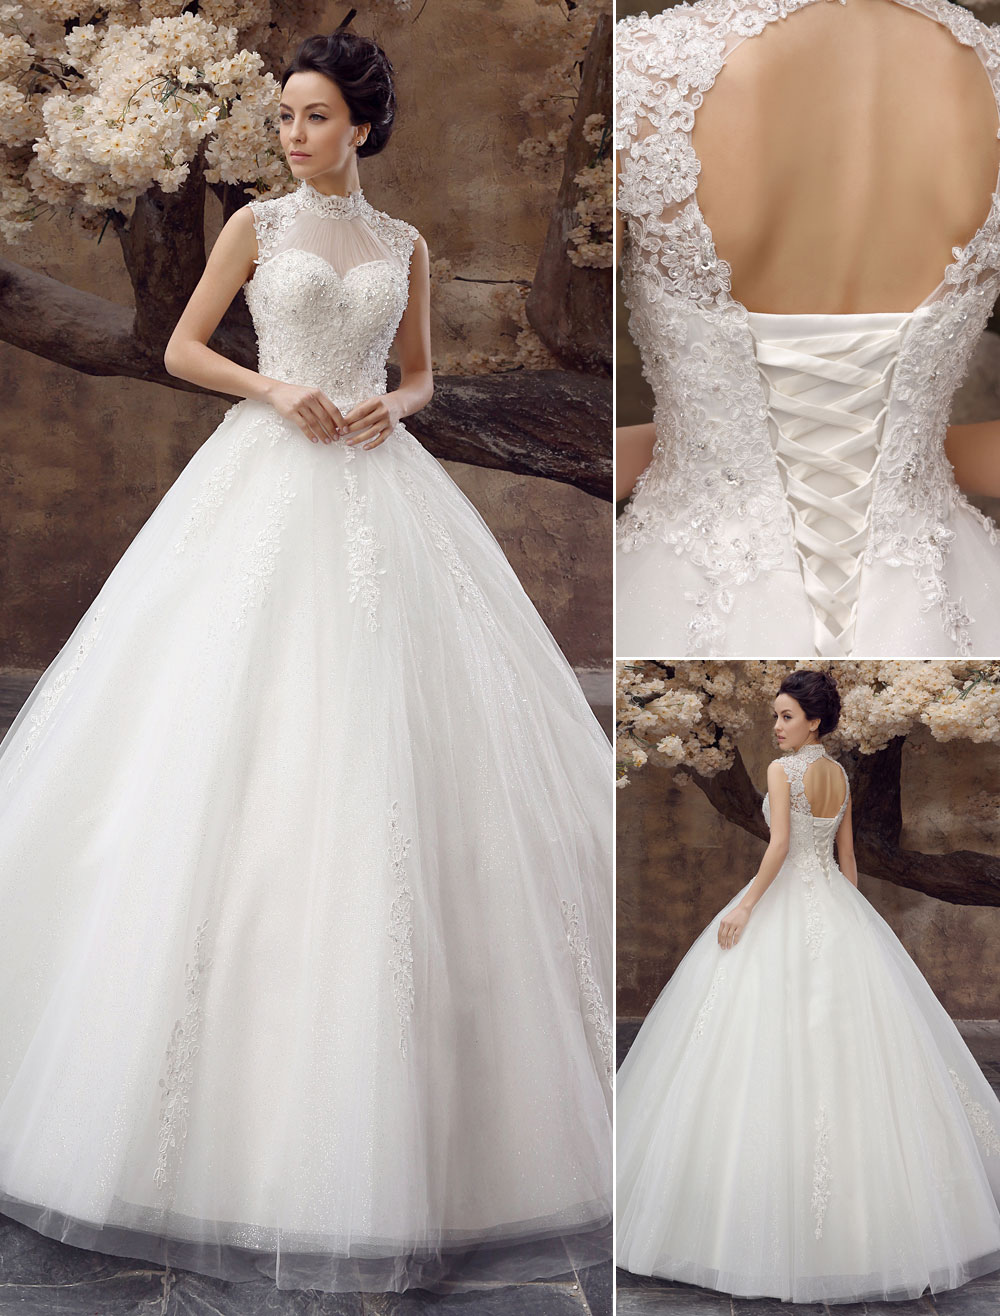 white ball gown high collar lace floor-length wedding dress for